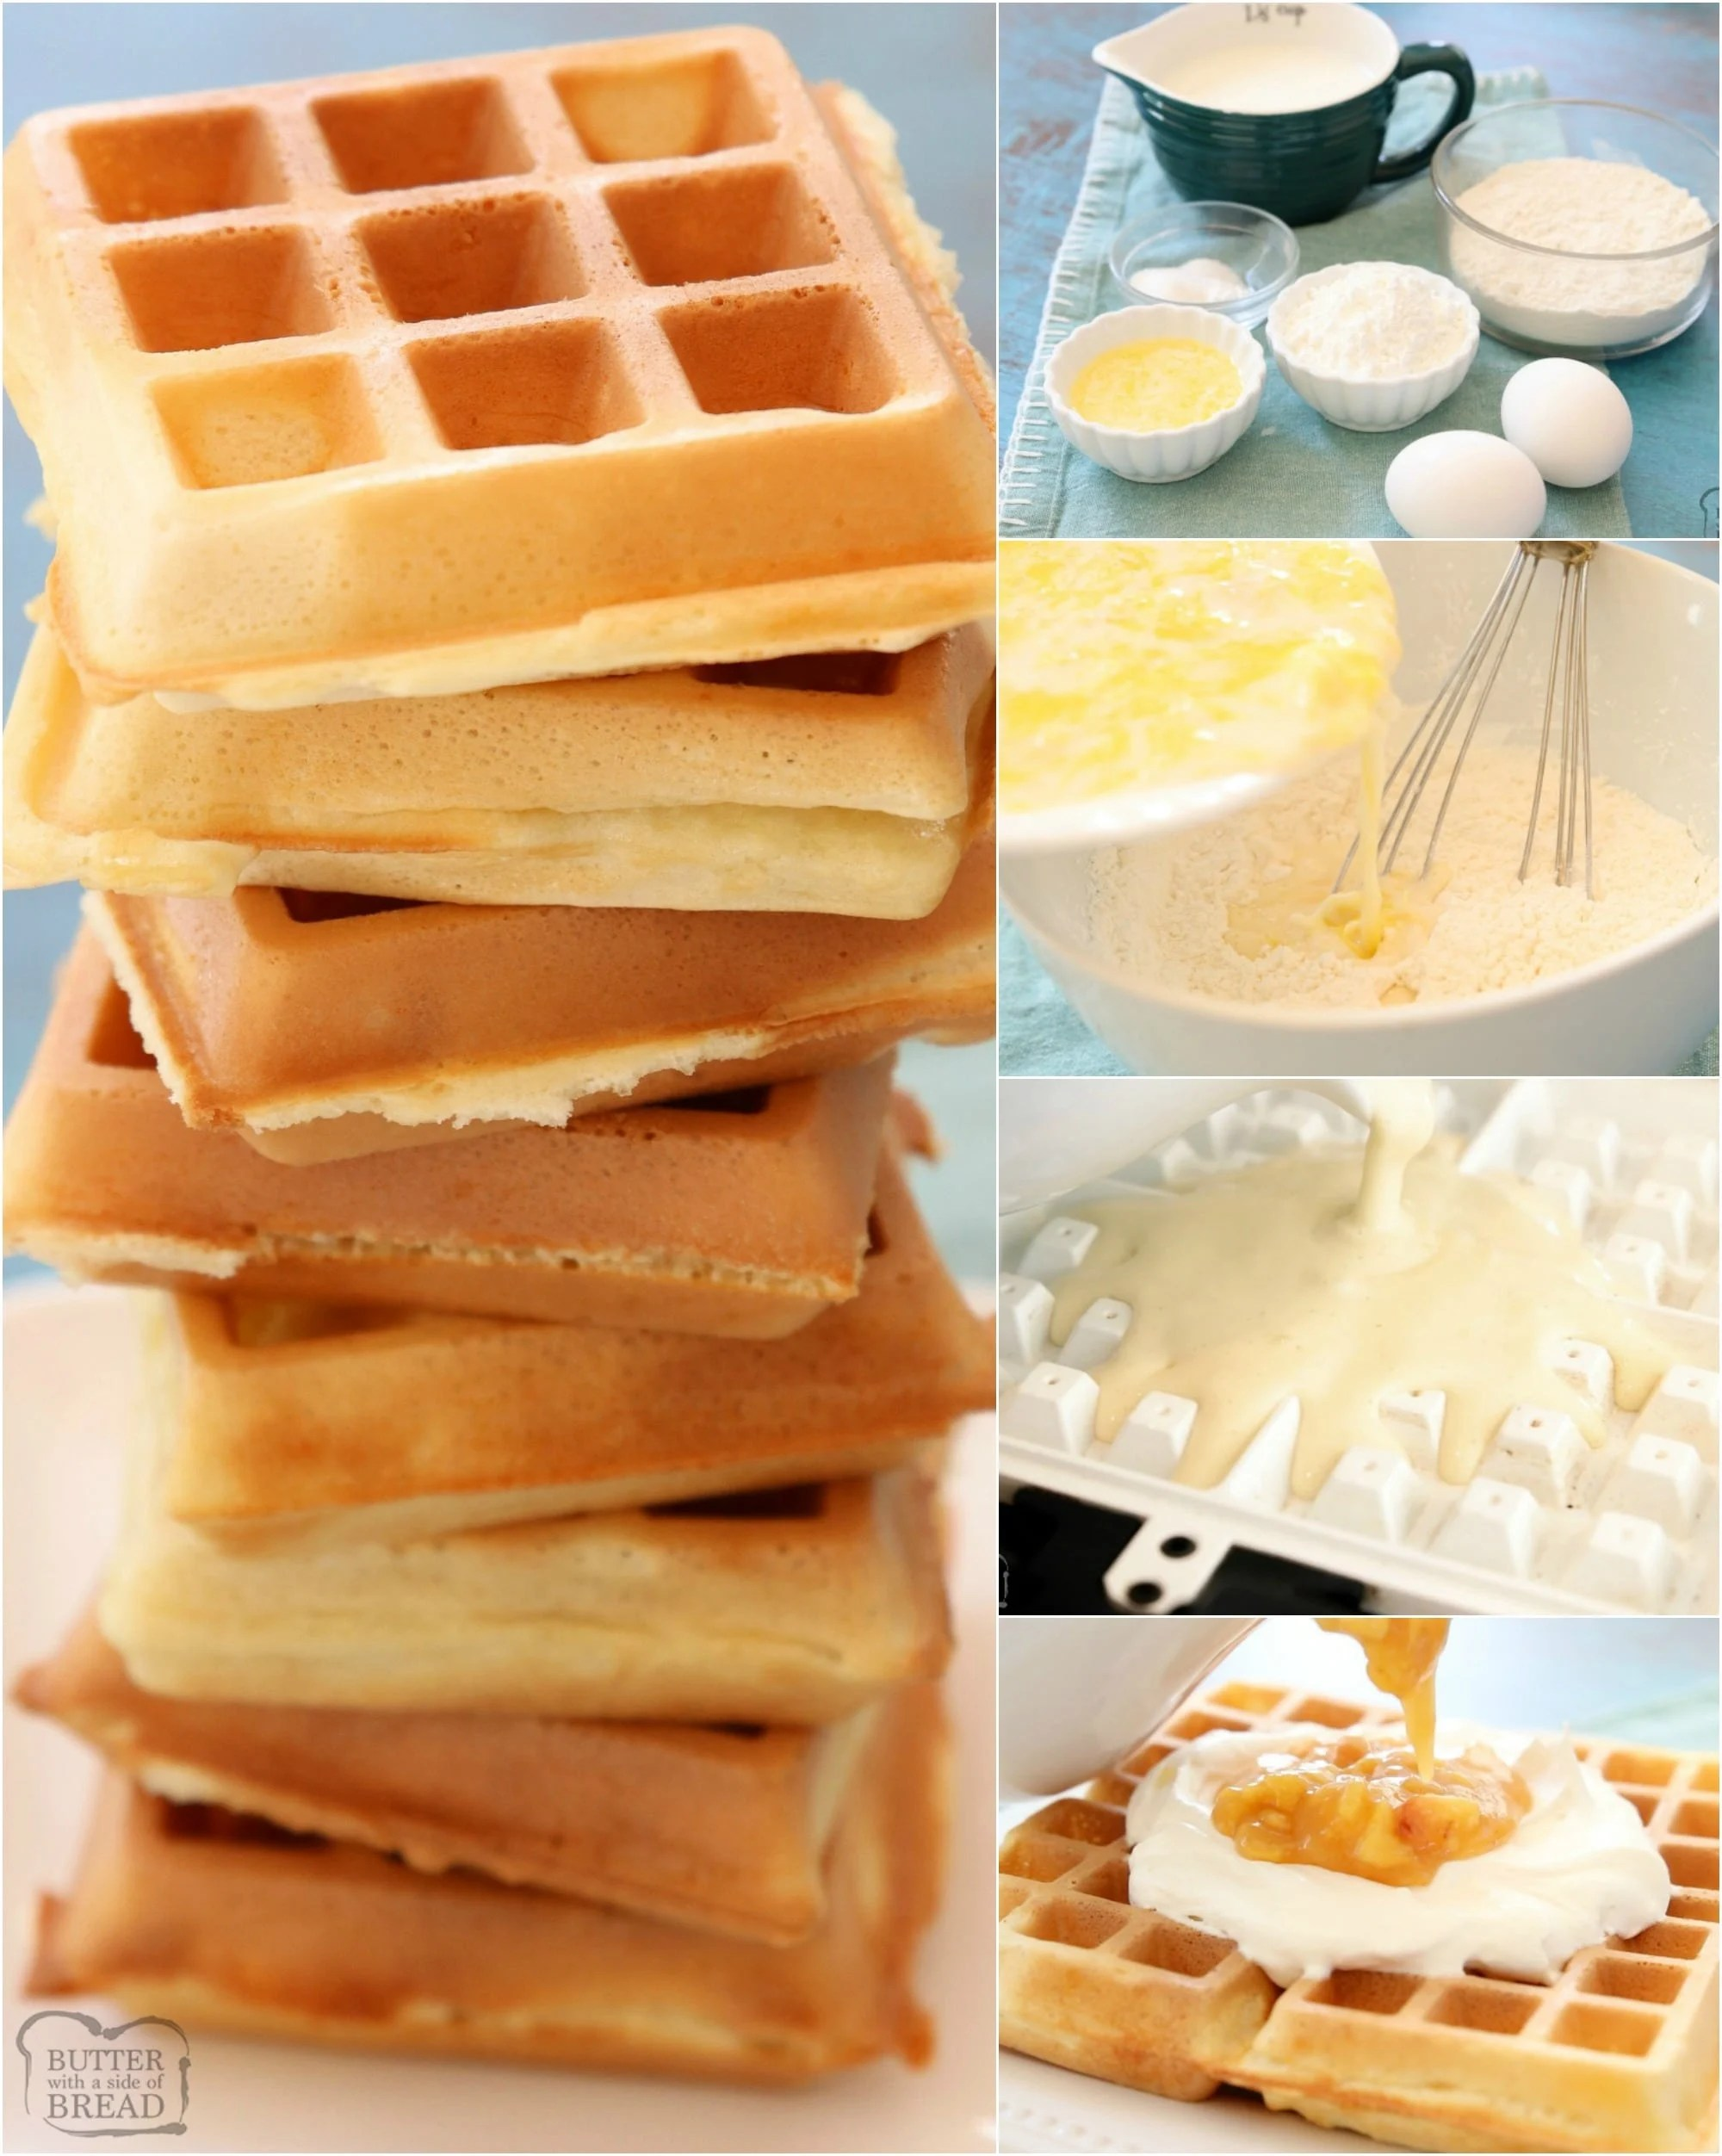 BEST Crispy Belgian Waffle recipe with 4 tips that make these the BEST waffles ever! Simple waffle recipe that everyone loves.